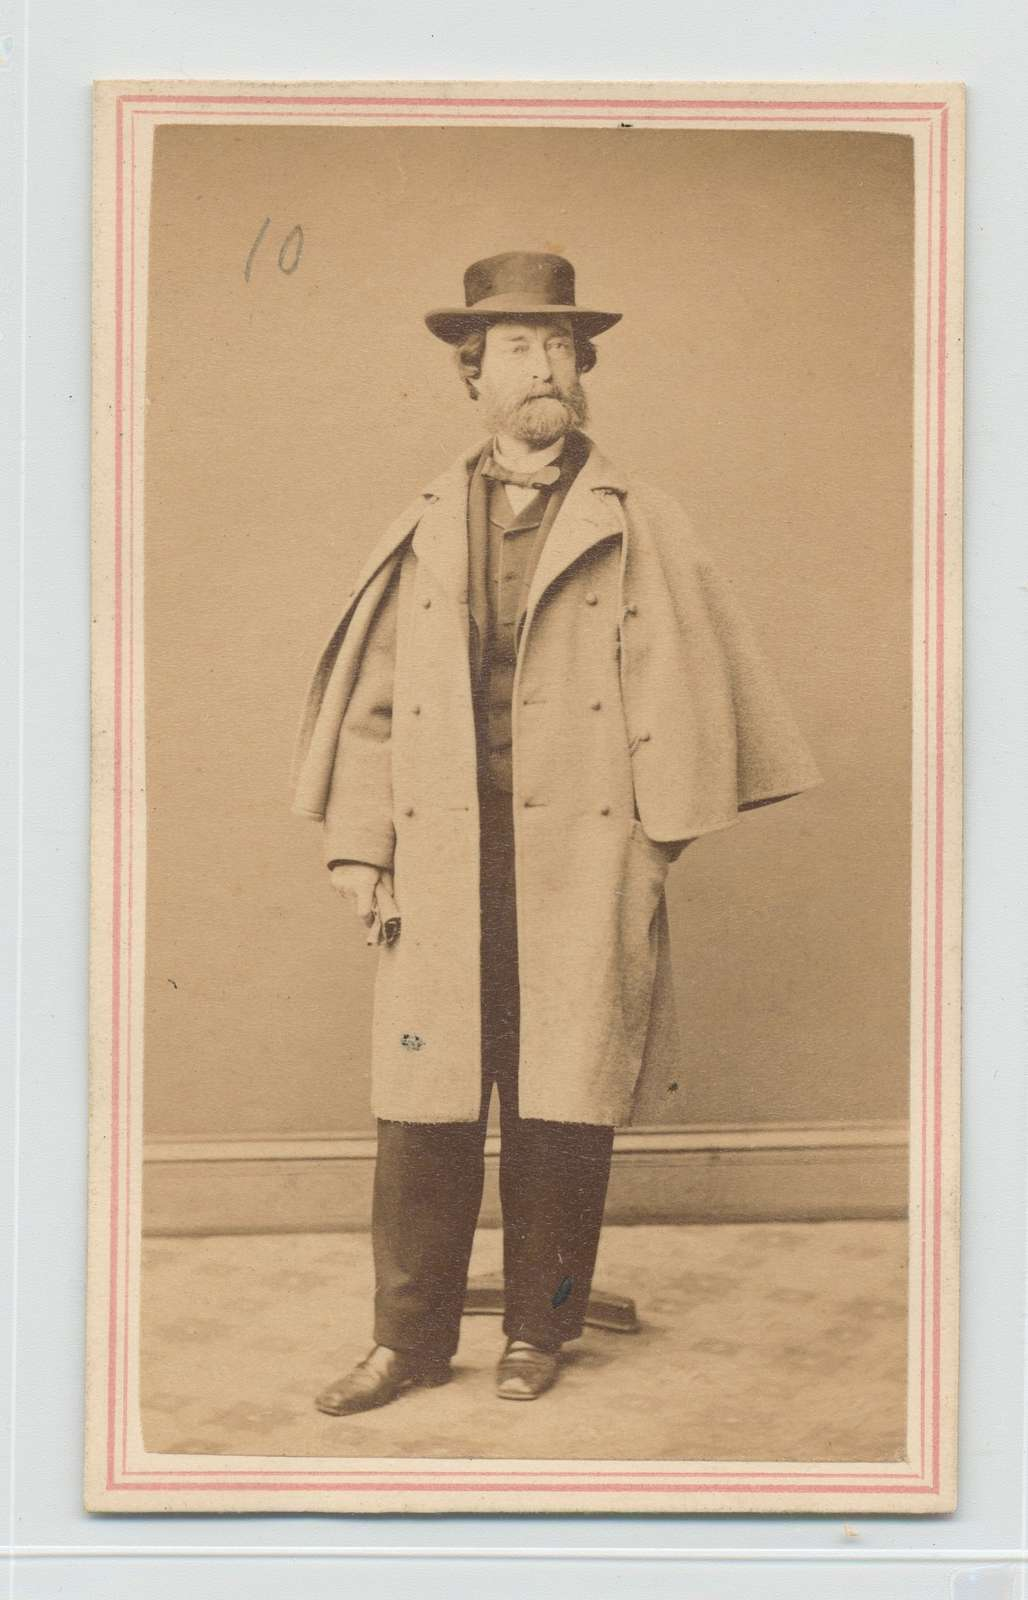 Dr. J. W. Page [standing]